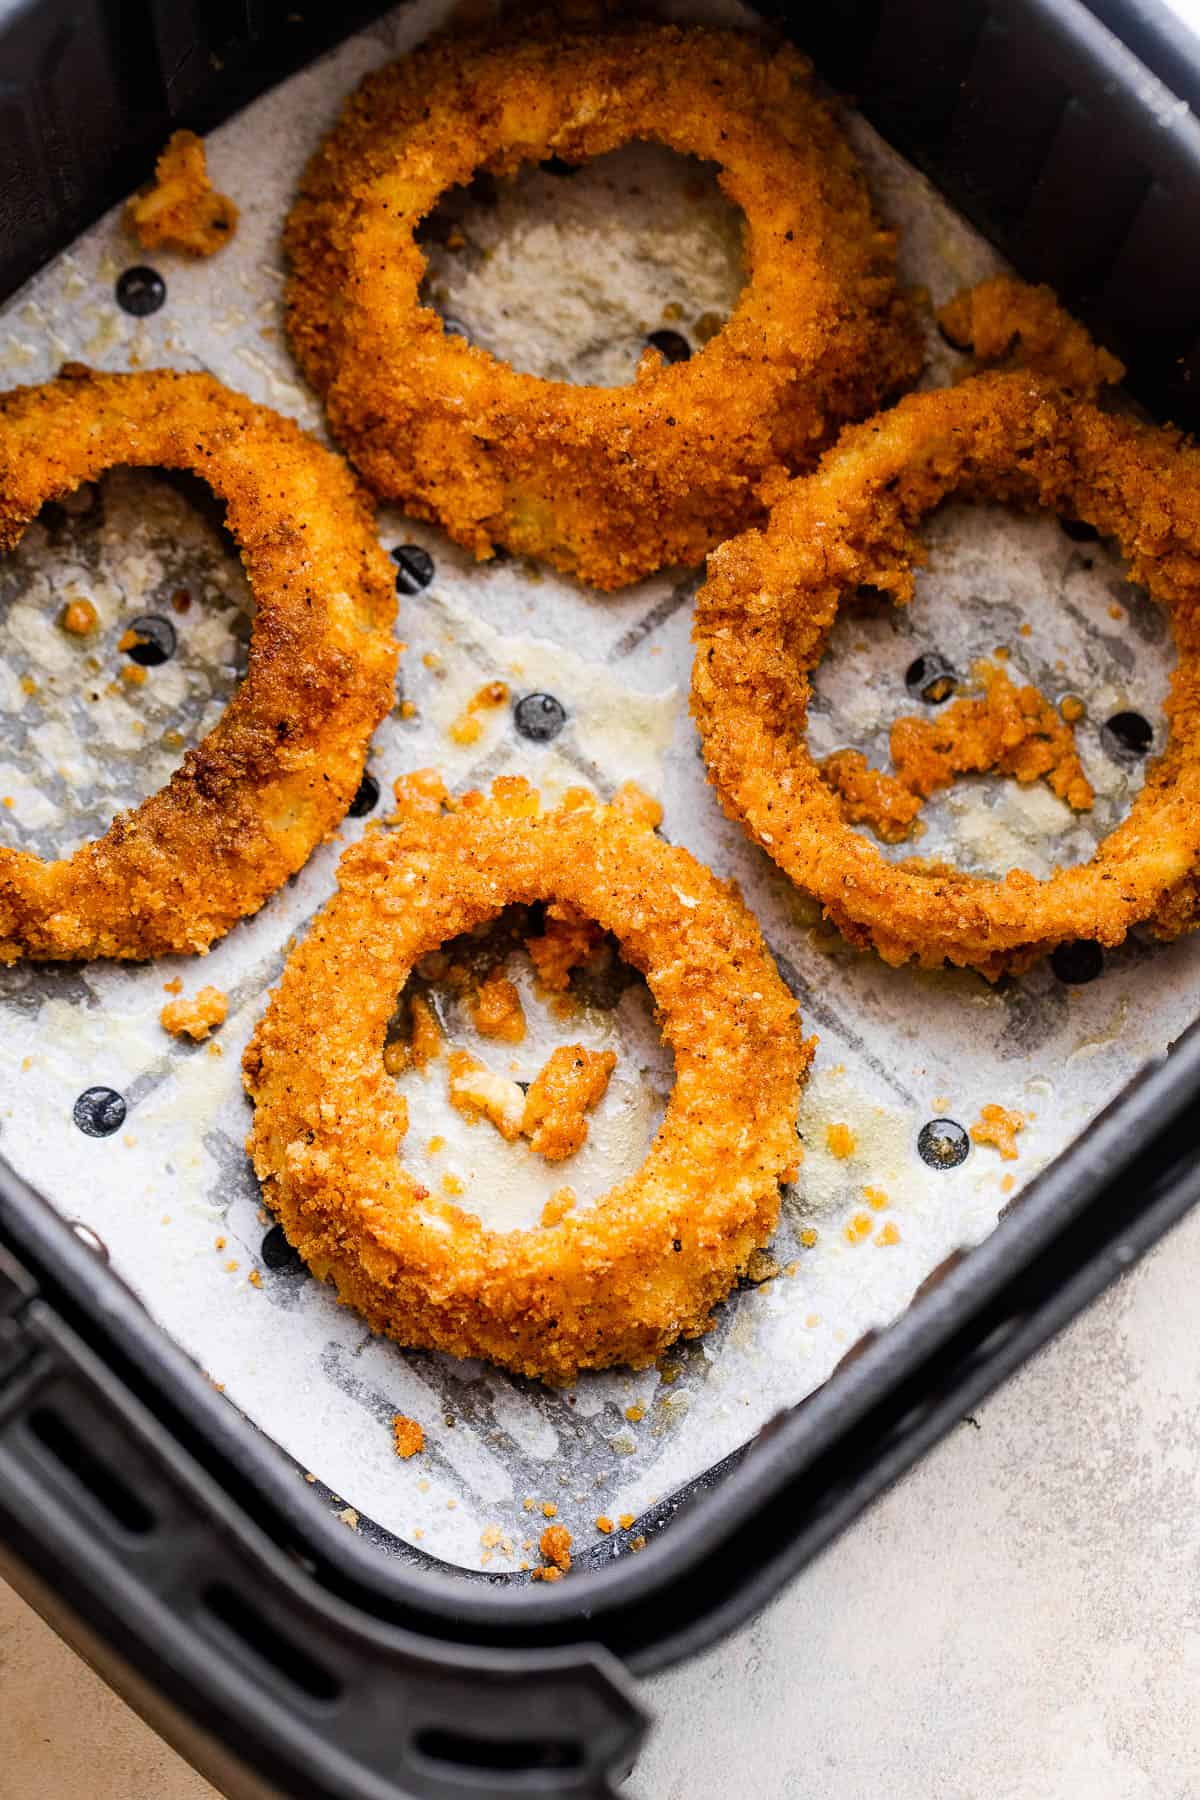 cooking onion rings in the air fryer basket